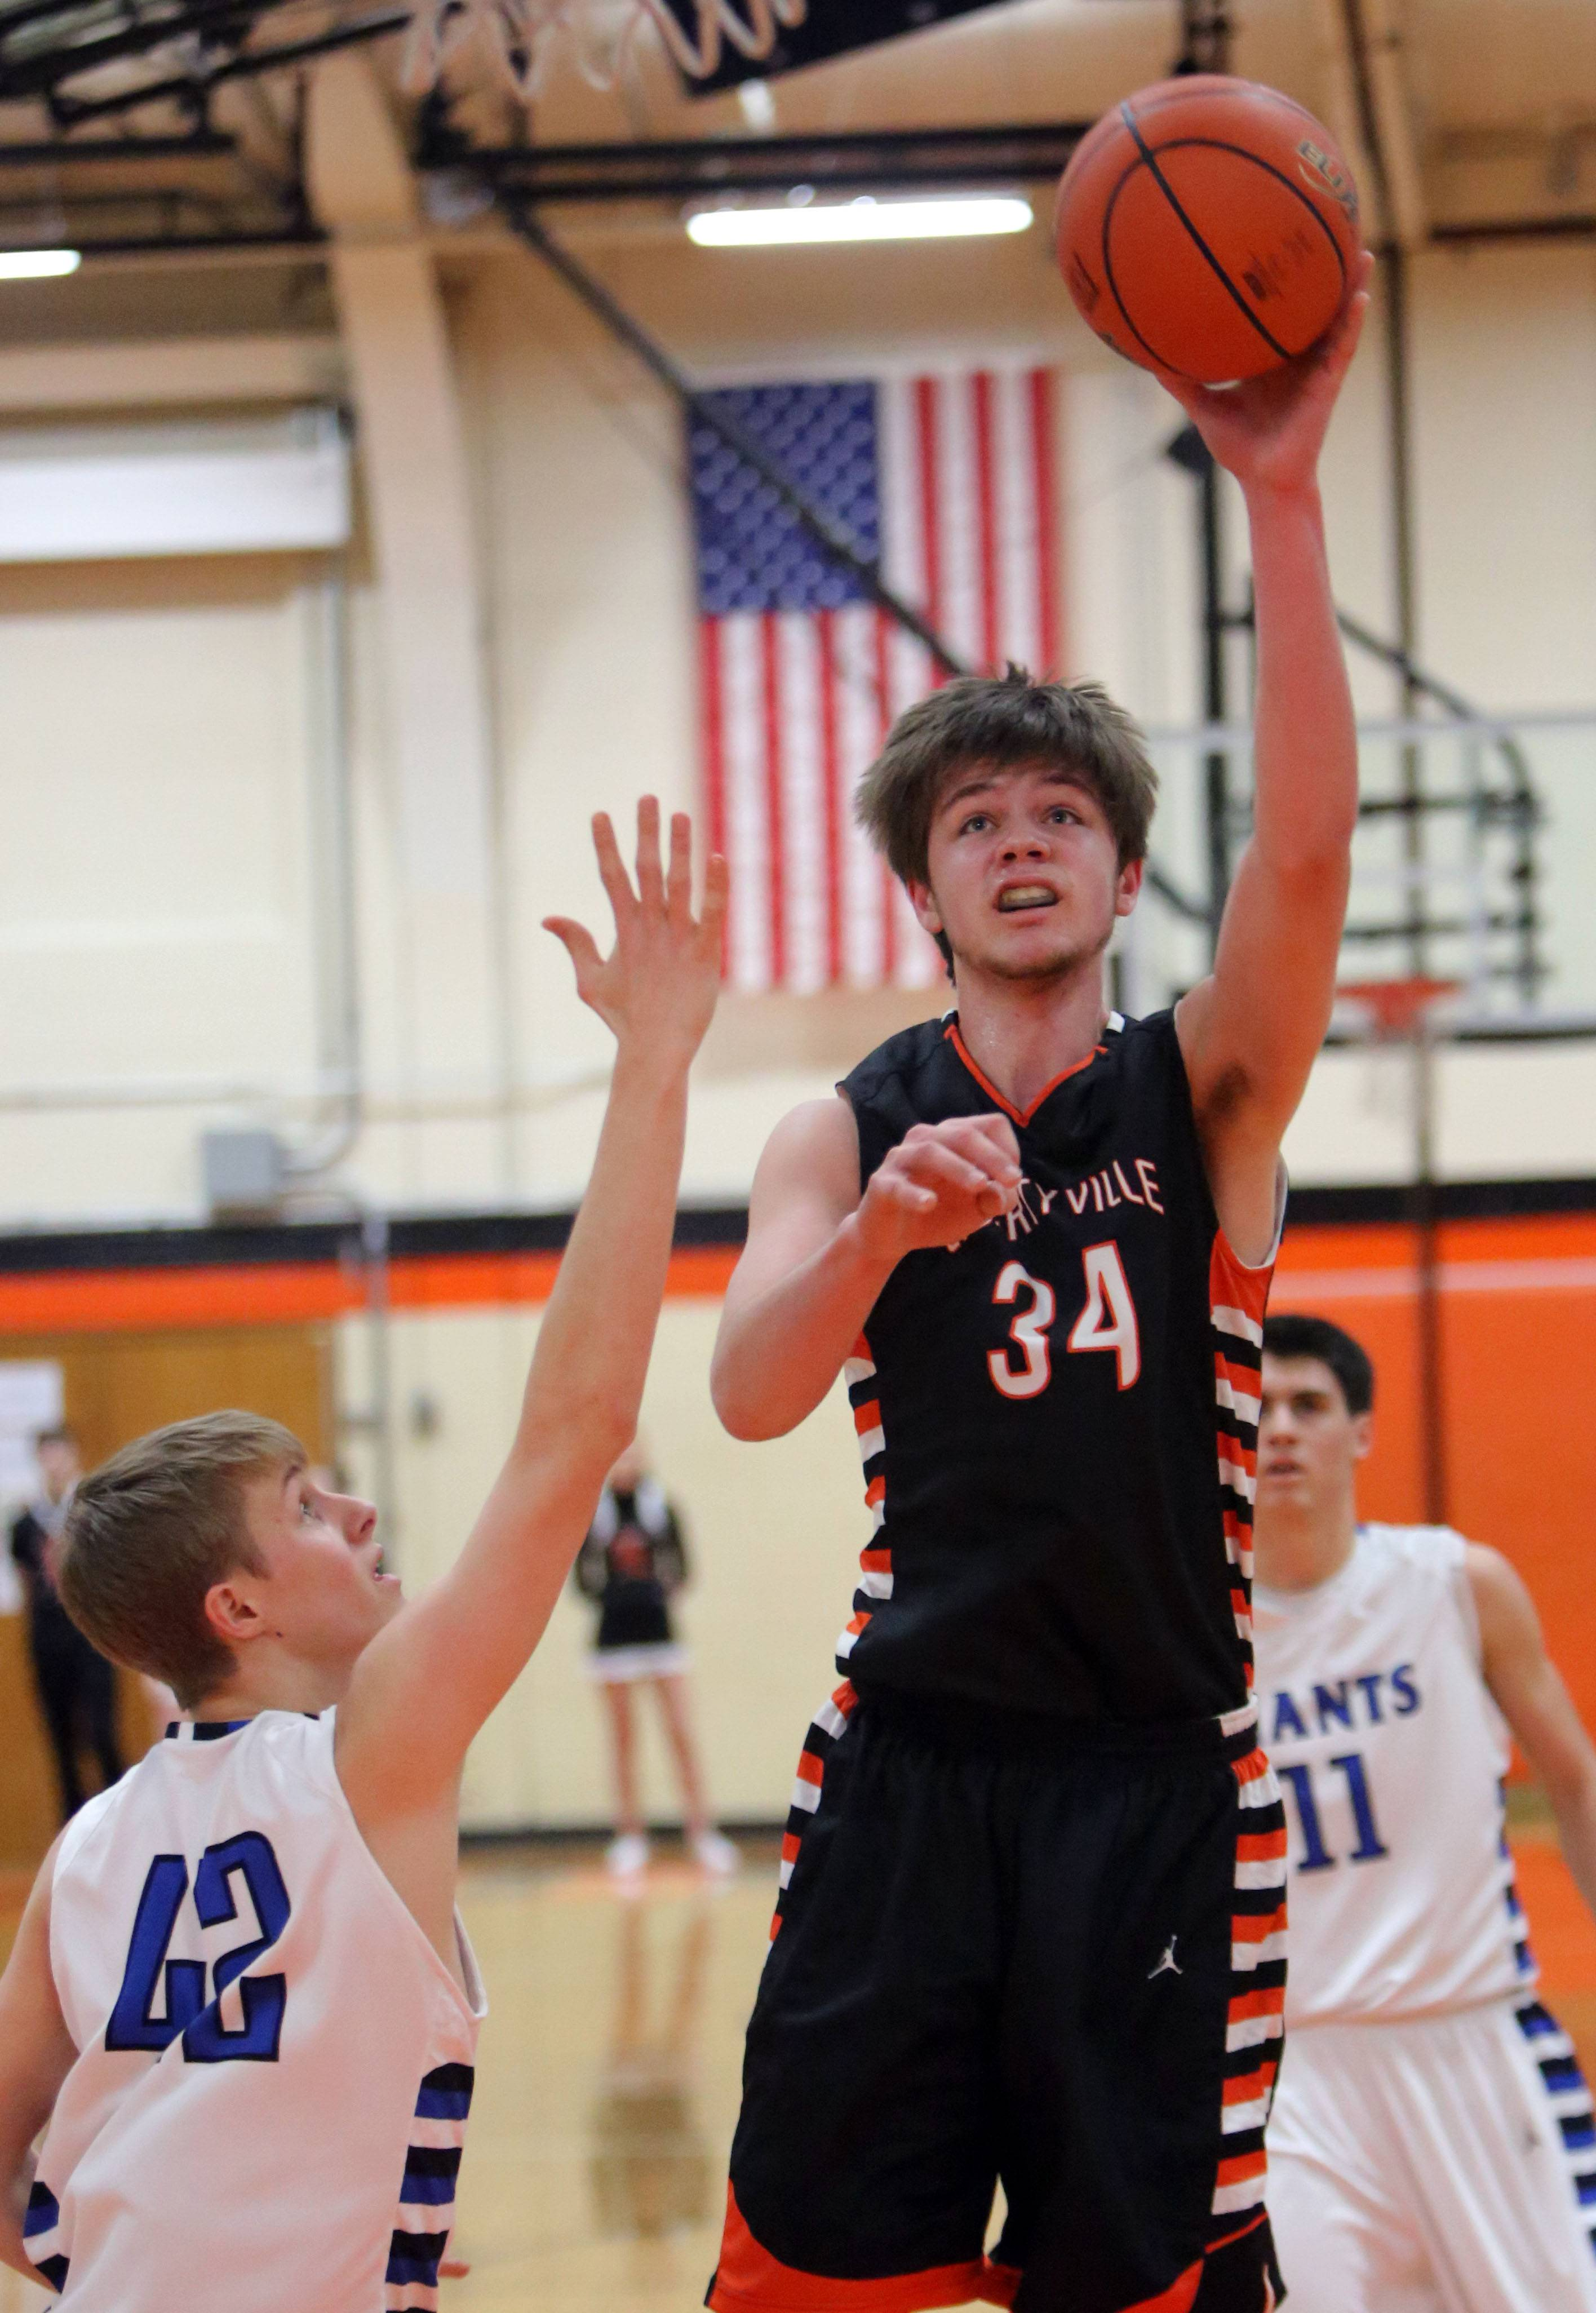 Libertyville's Joe Borcia, right, shoots over Highland Park's Hallvard Lundevall during Class 4A regional semifinal play at Libertyville on Tuesday.